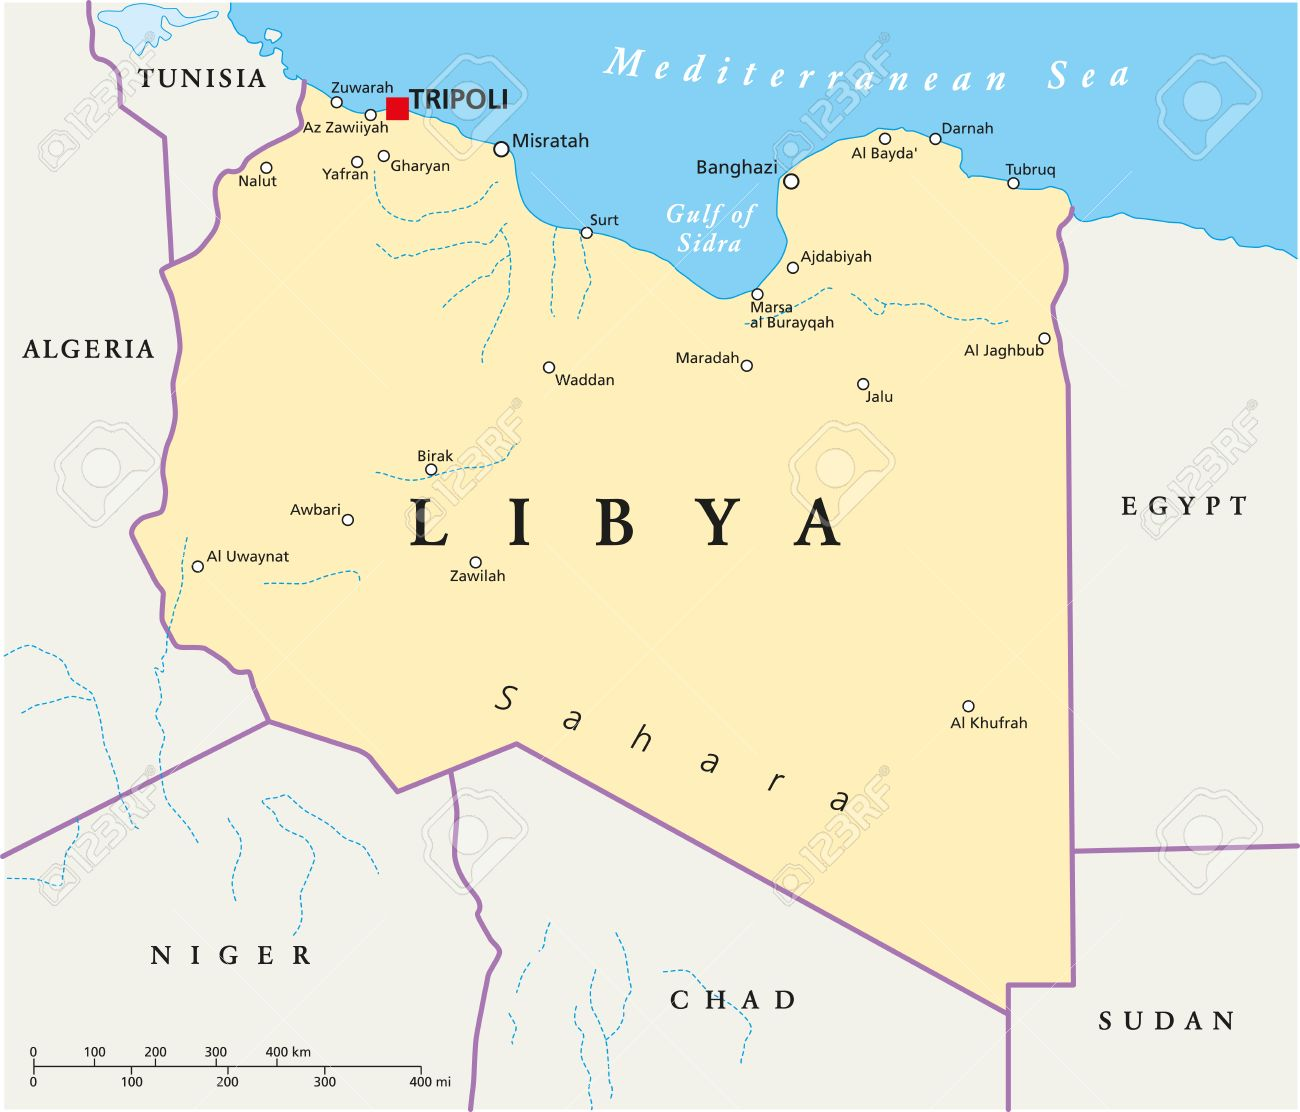 Libya Political Map With Capital Tripoli, With National Borders